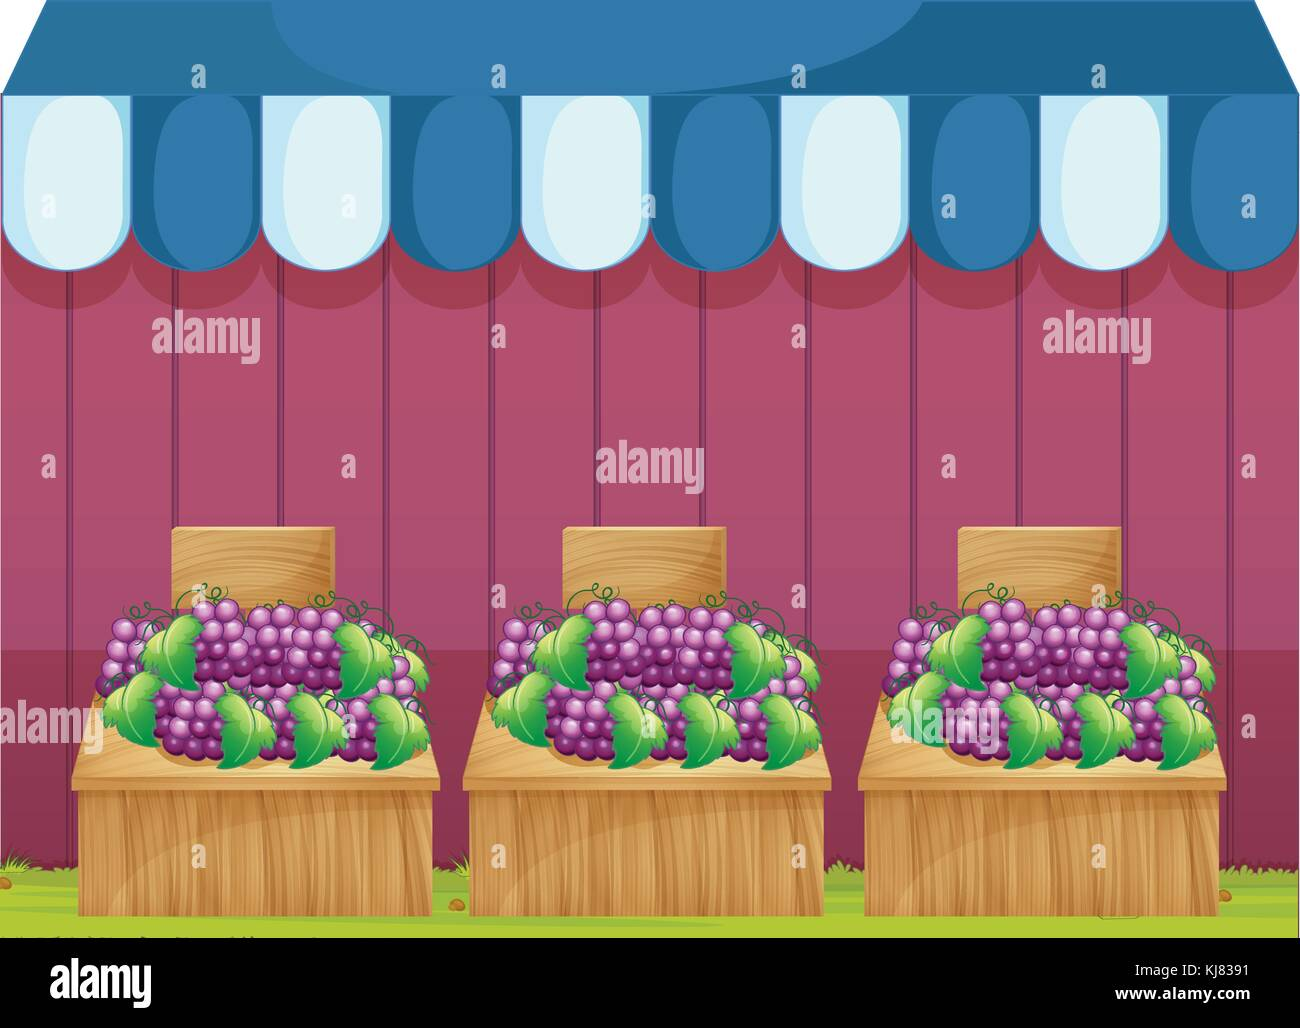 Illustration of the fruit stands with grapes on a white background Stock Vector